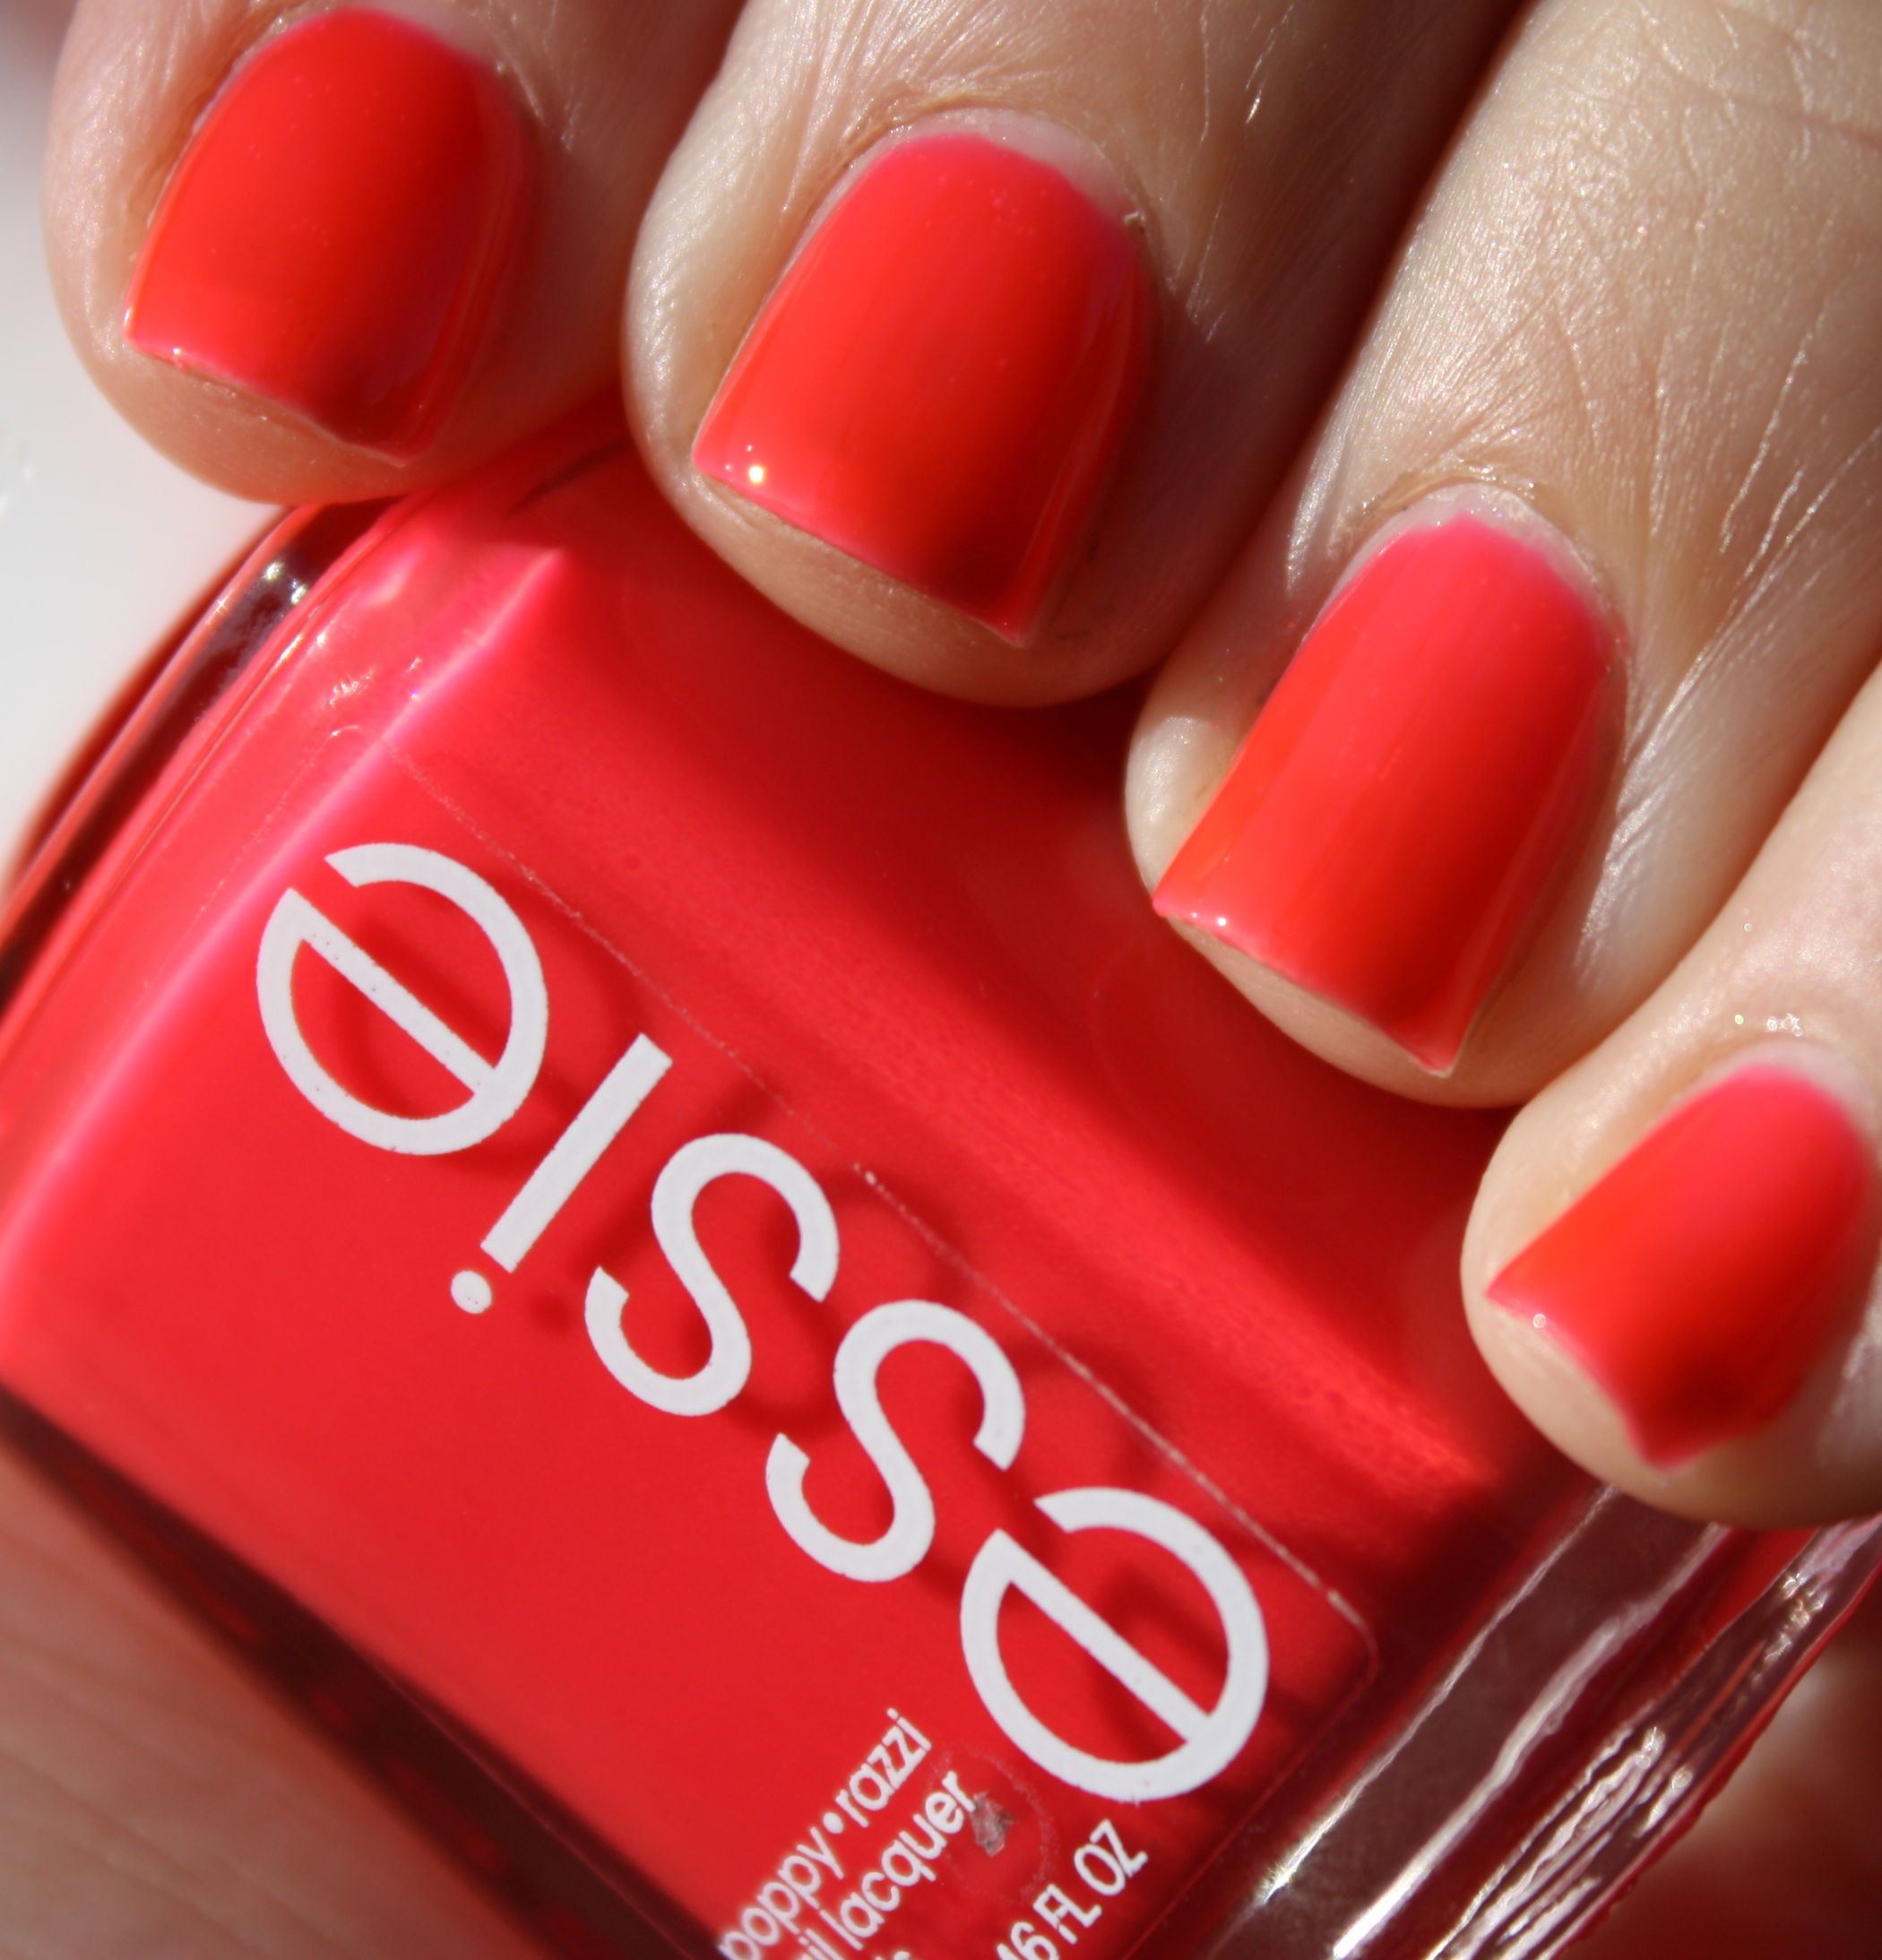 Looks - Poppy-razzi essie neons collection video